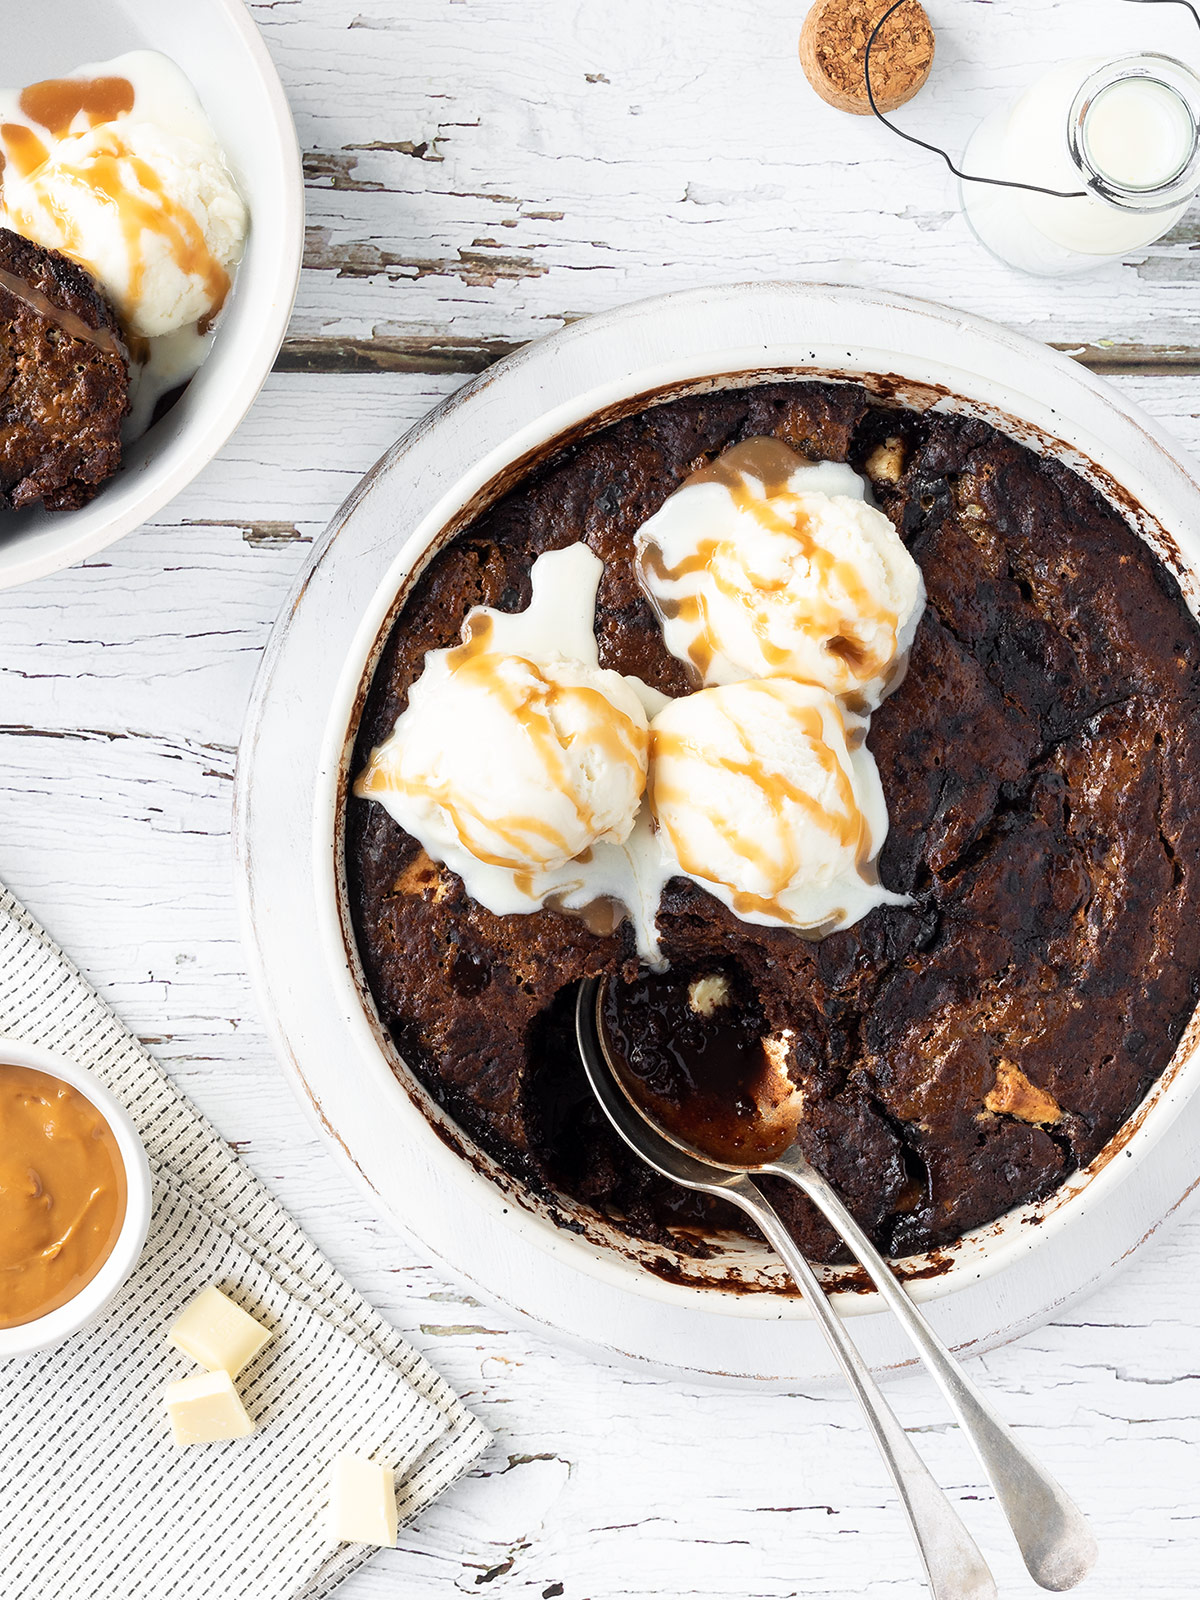 Chocolate caramel self saucing pudding with scoops of ice cream and caramel sauce on top.